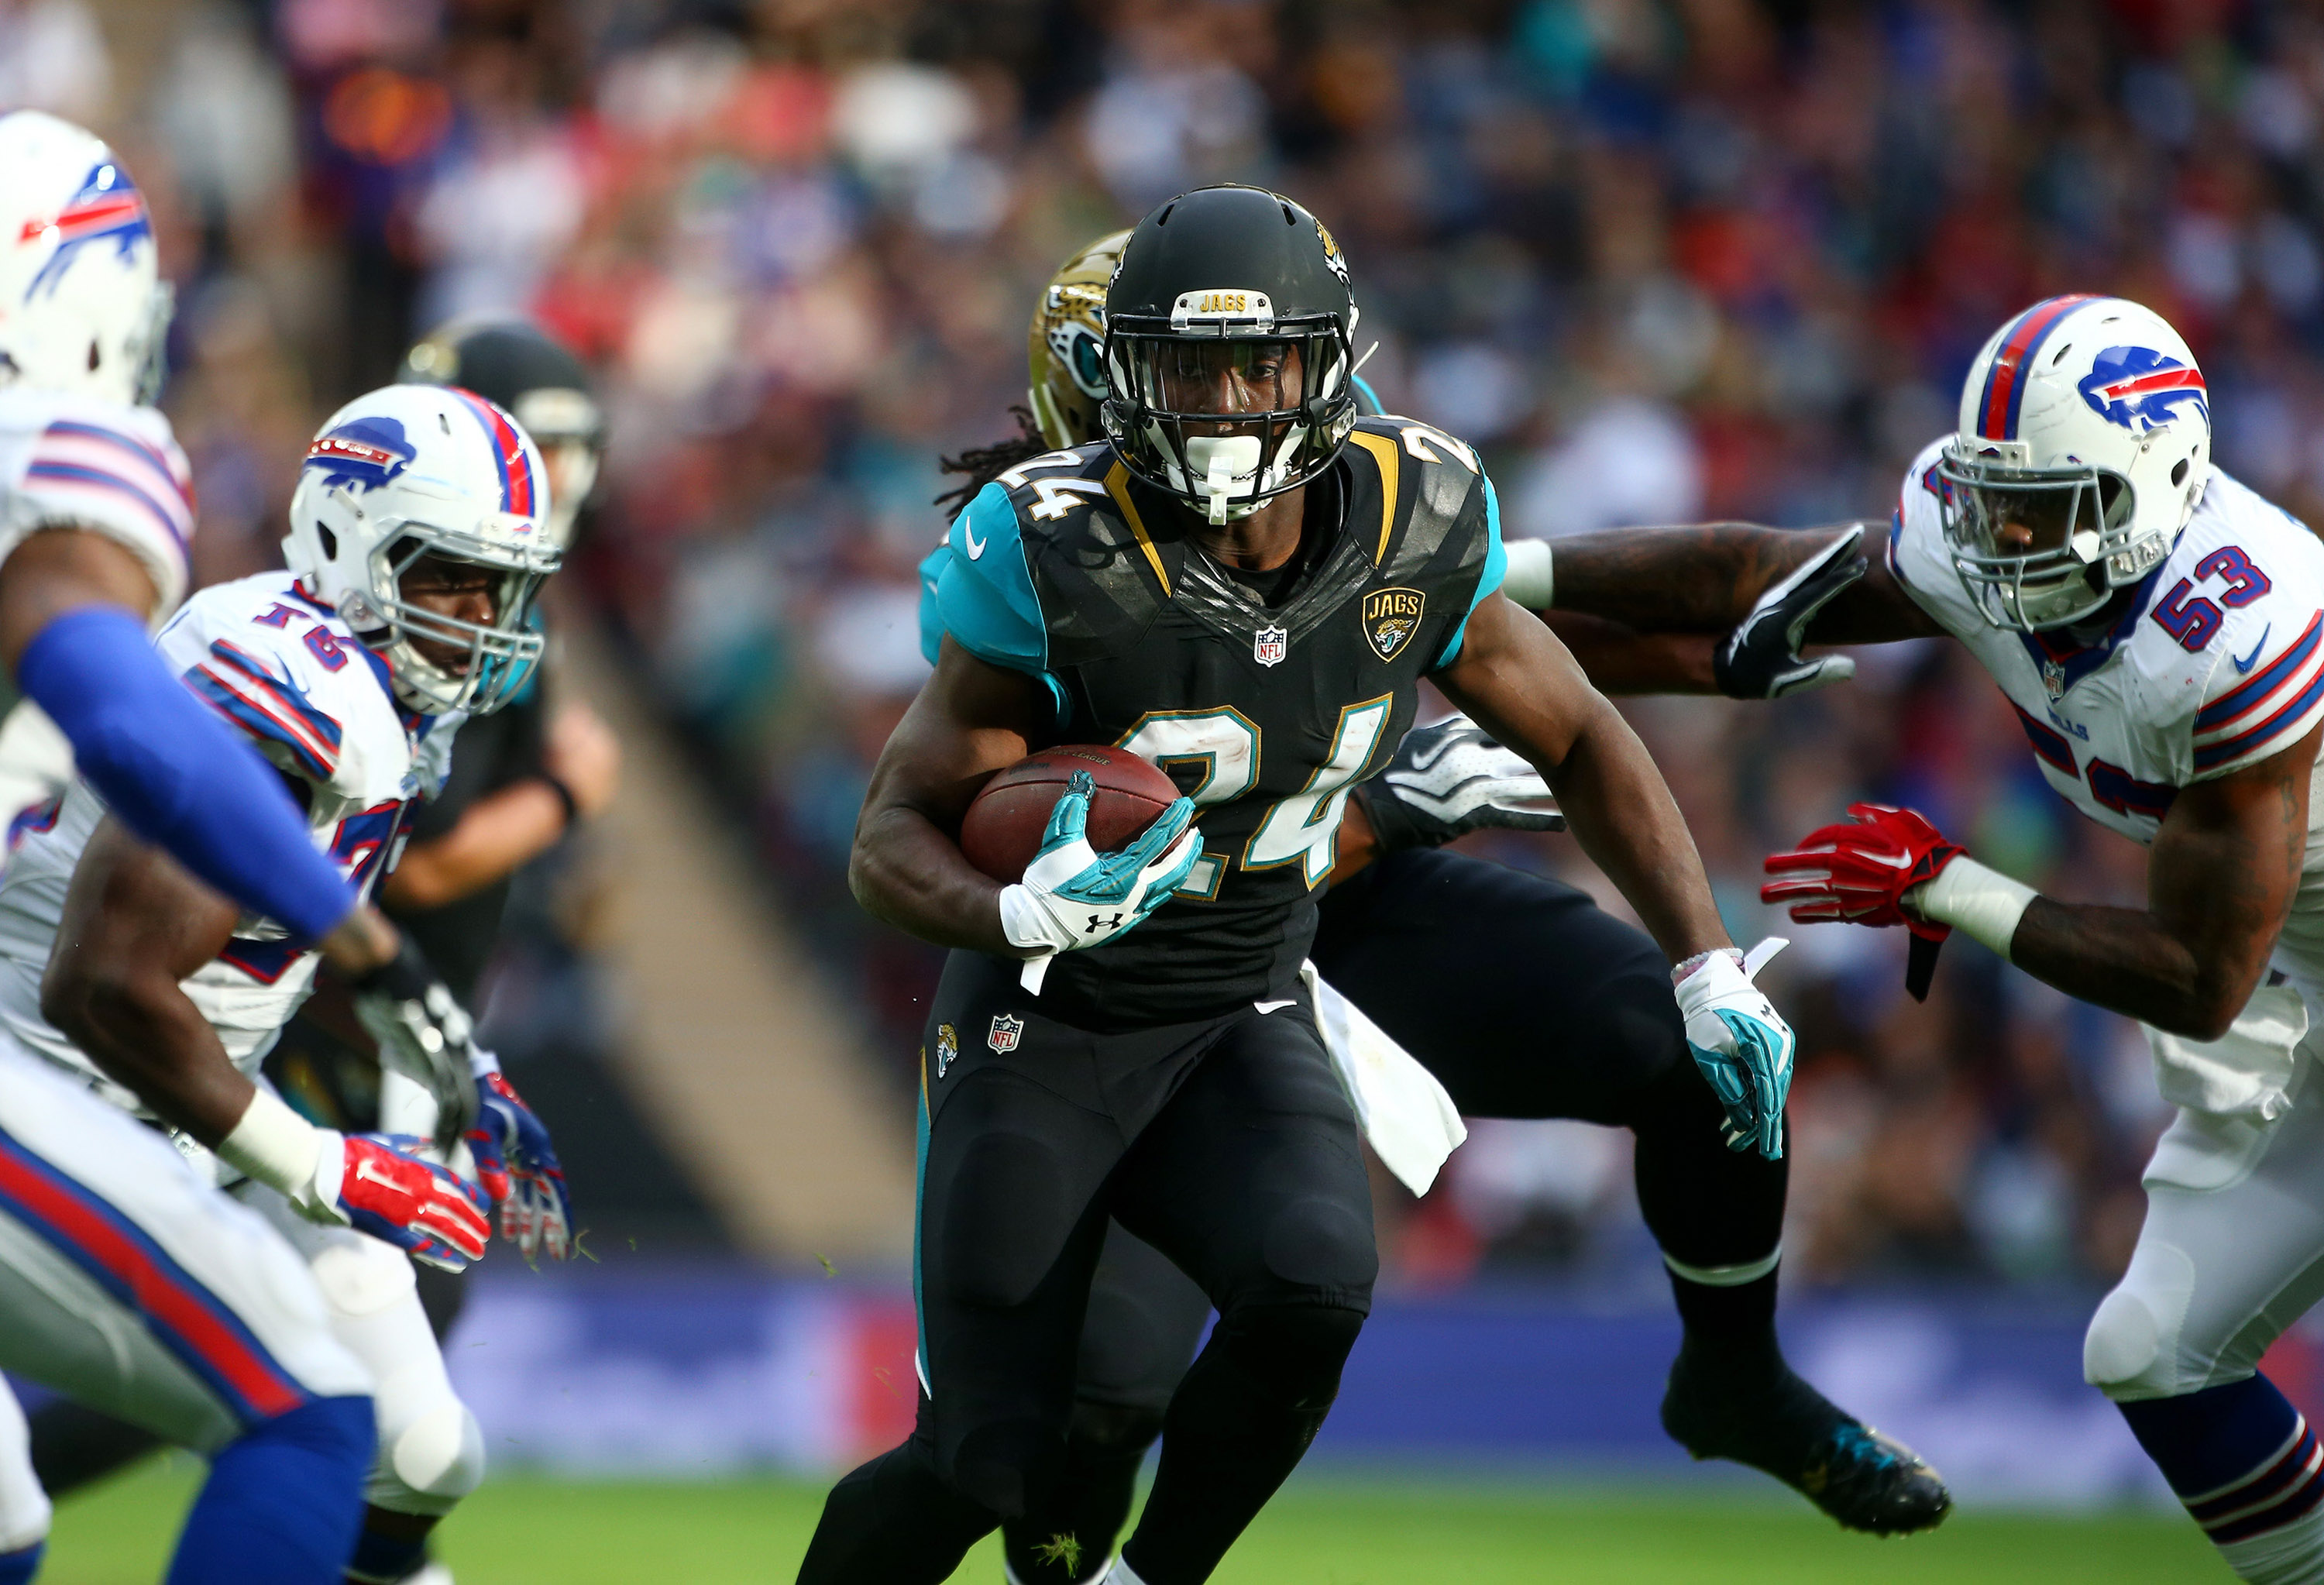 TJ Yeldon of the Jaguars runs on the Buffalo defense. (Getty Images)